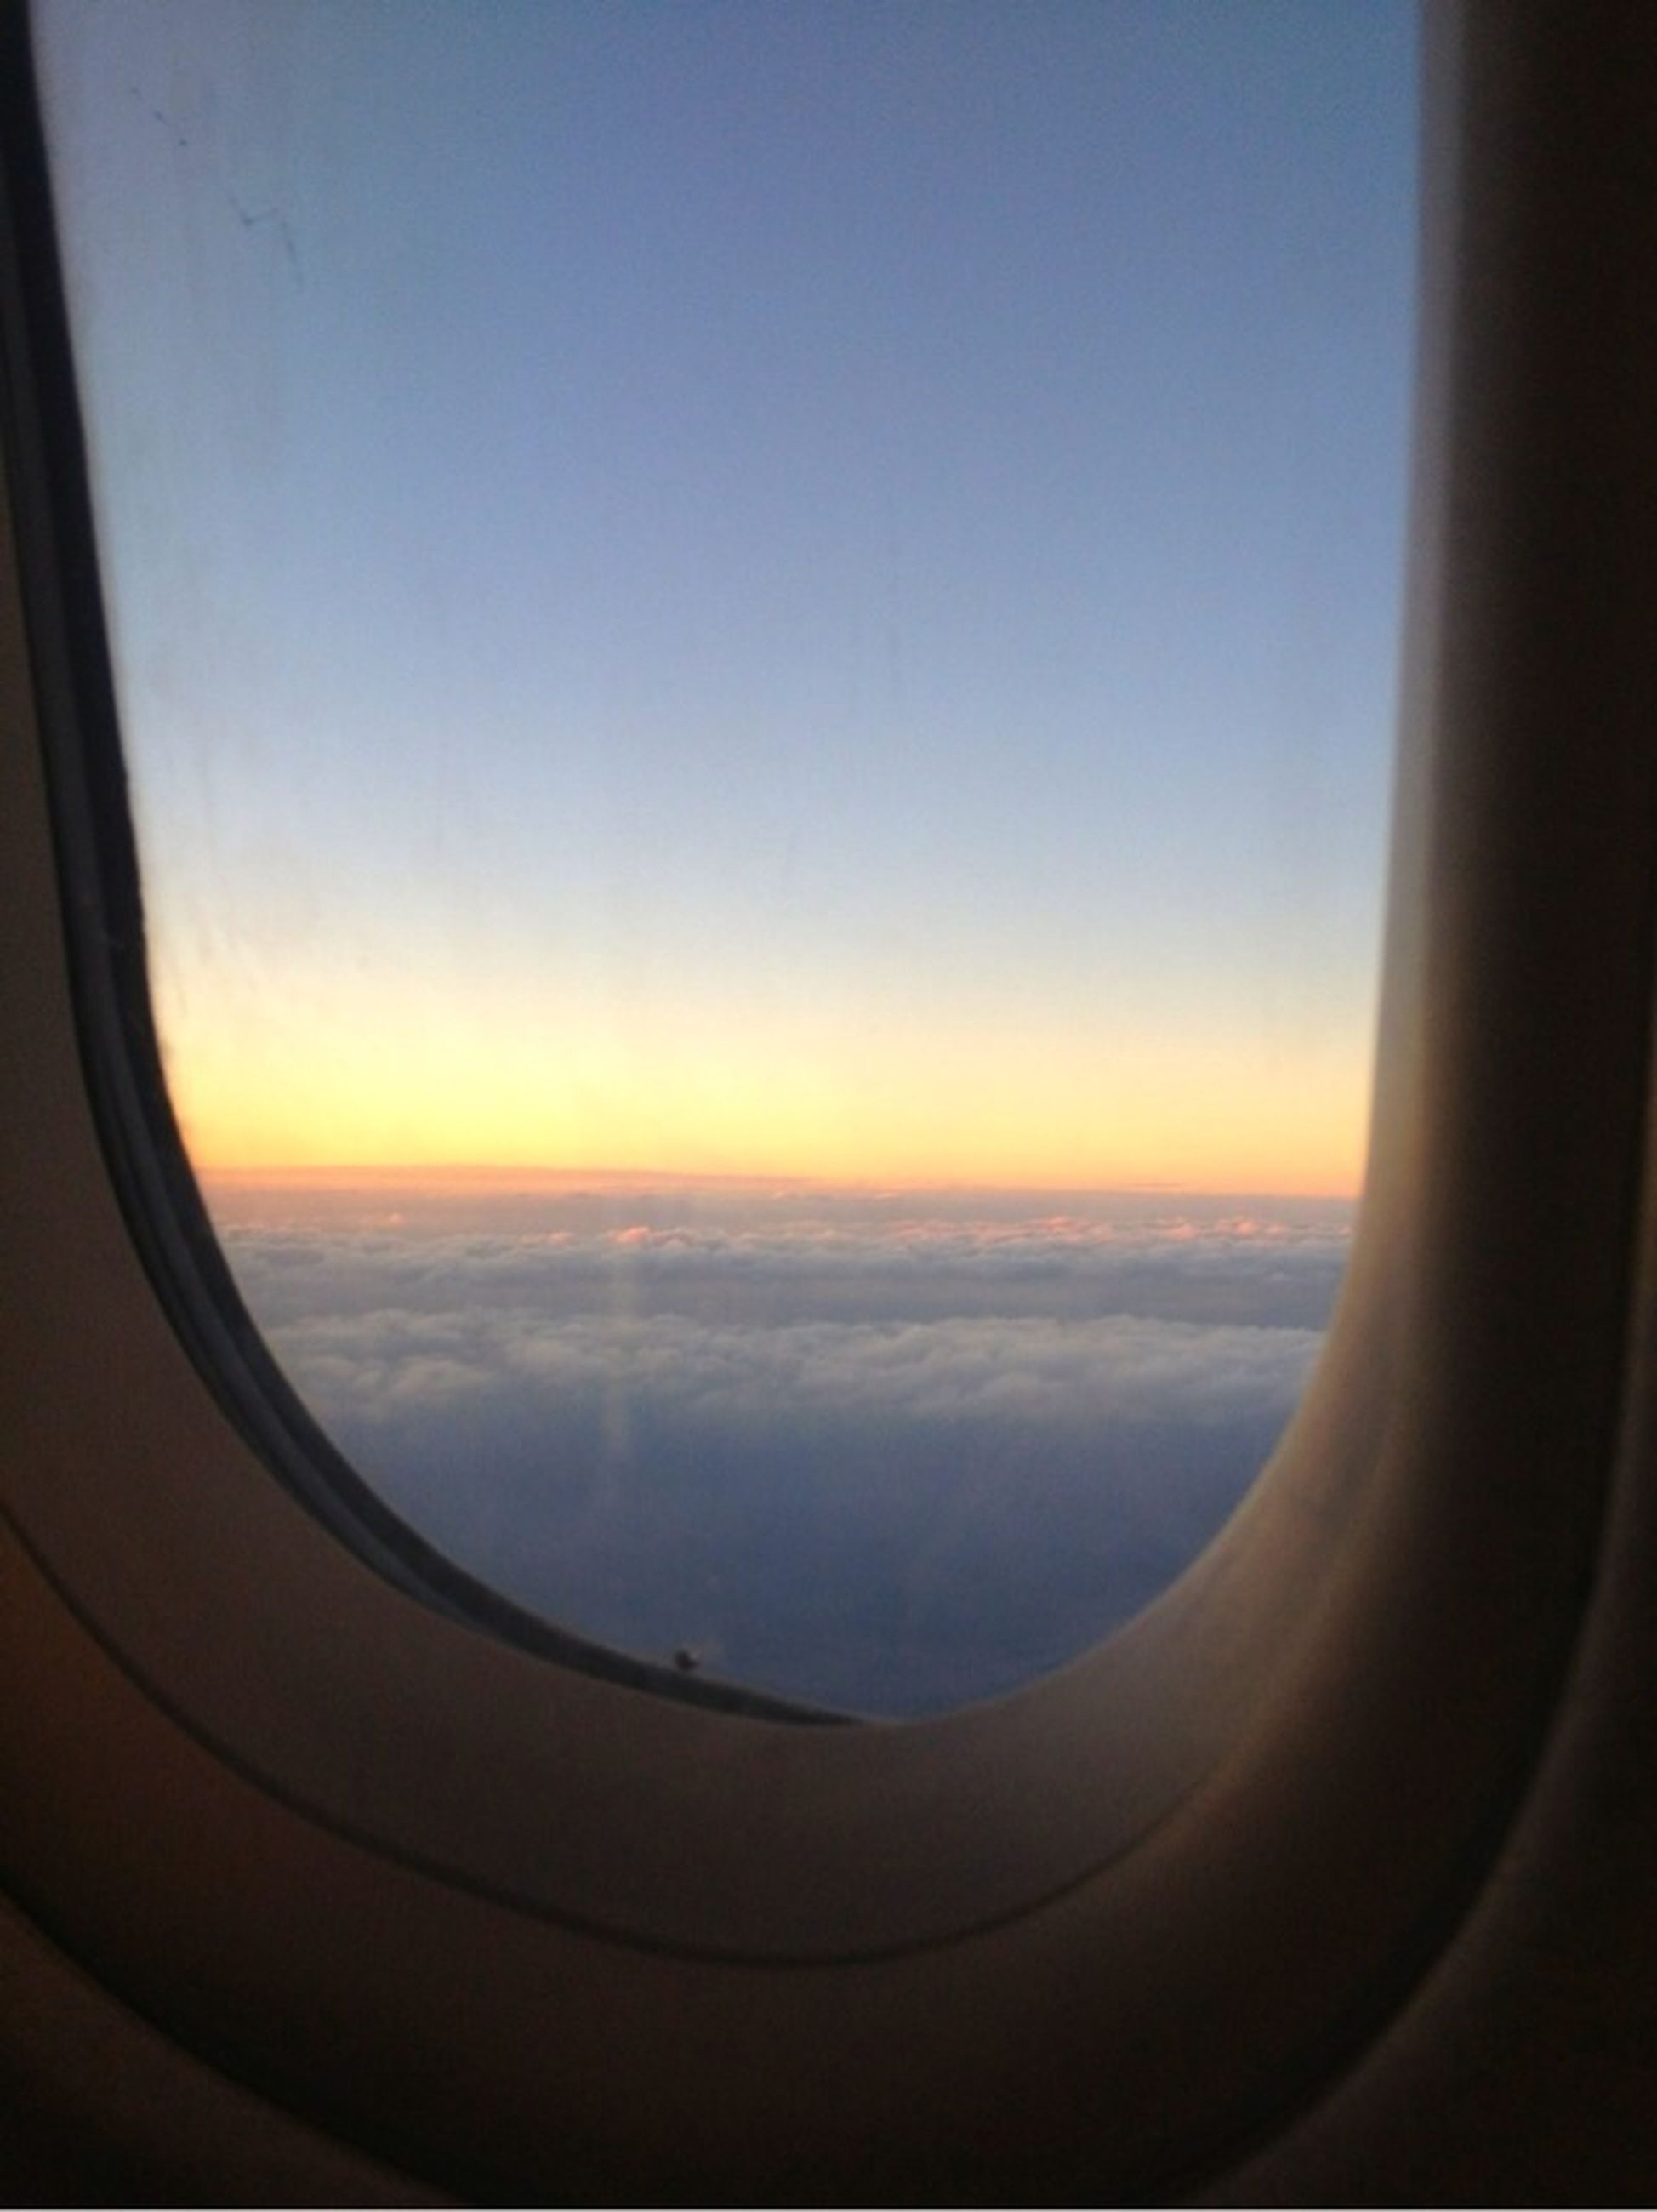 airplane, air vehicle, transportation, window, flying, mode of transport, aircraft wing, scenics, sky, vehicle interior, sunset, aerial view, beauty in nature, sea, travel, transparent, part of, journey, mid-air, glass - material